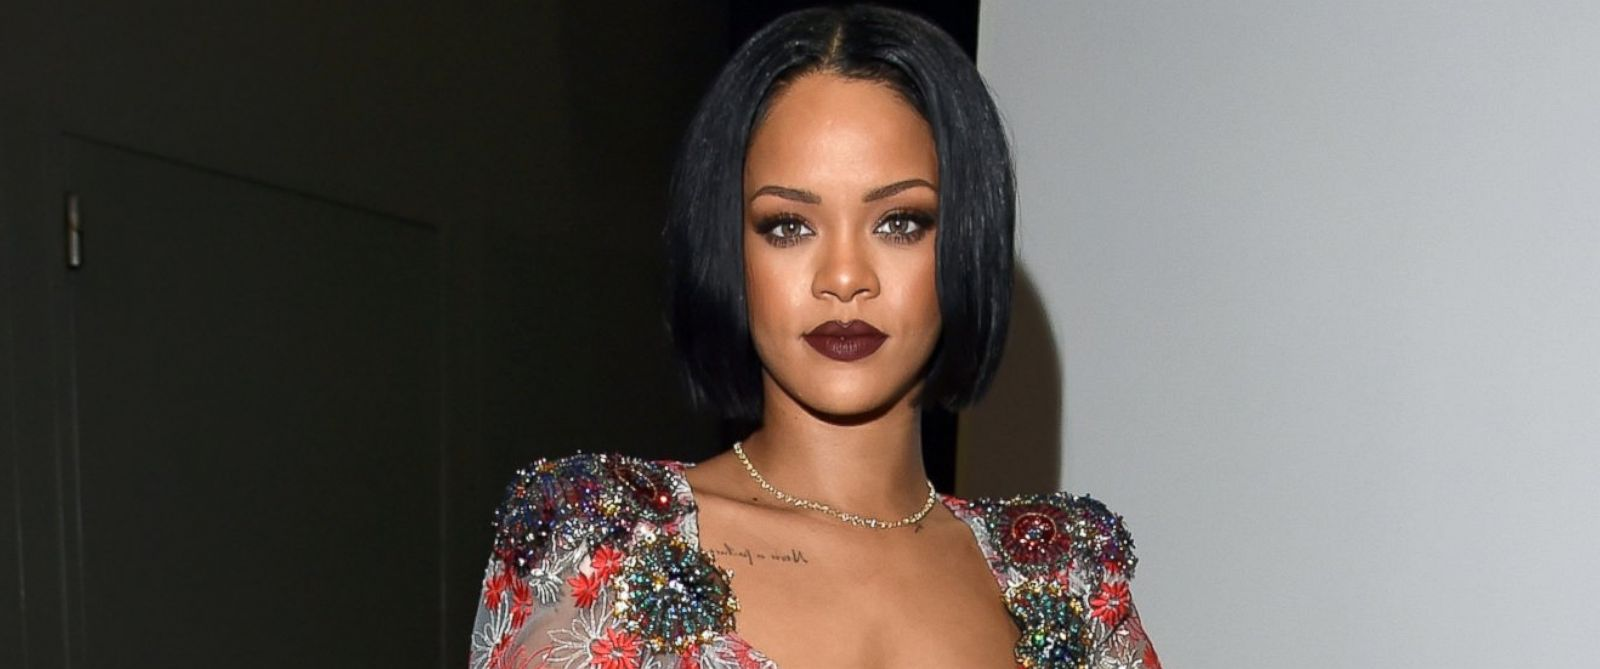 PHOTO: Rihanna attends the 2016 MusiCares Person of the Year honoring Lionel Richie at the Los Angeles Convention Center, Feb. 13, 2016, in Los Angeles.